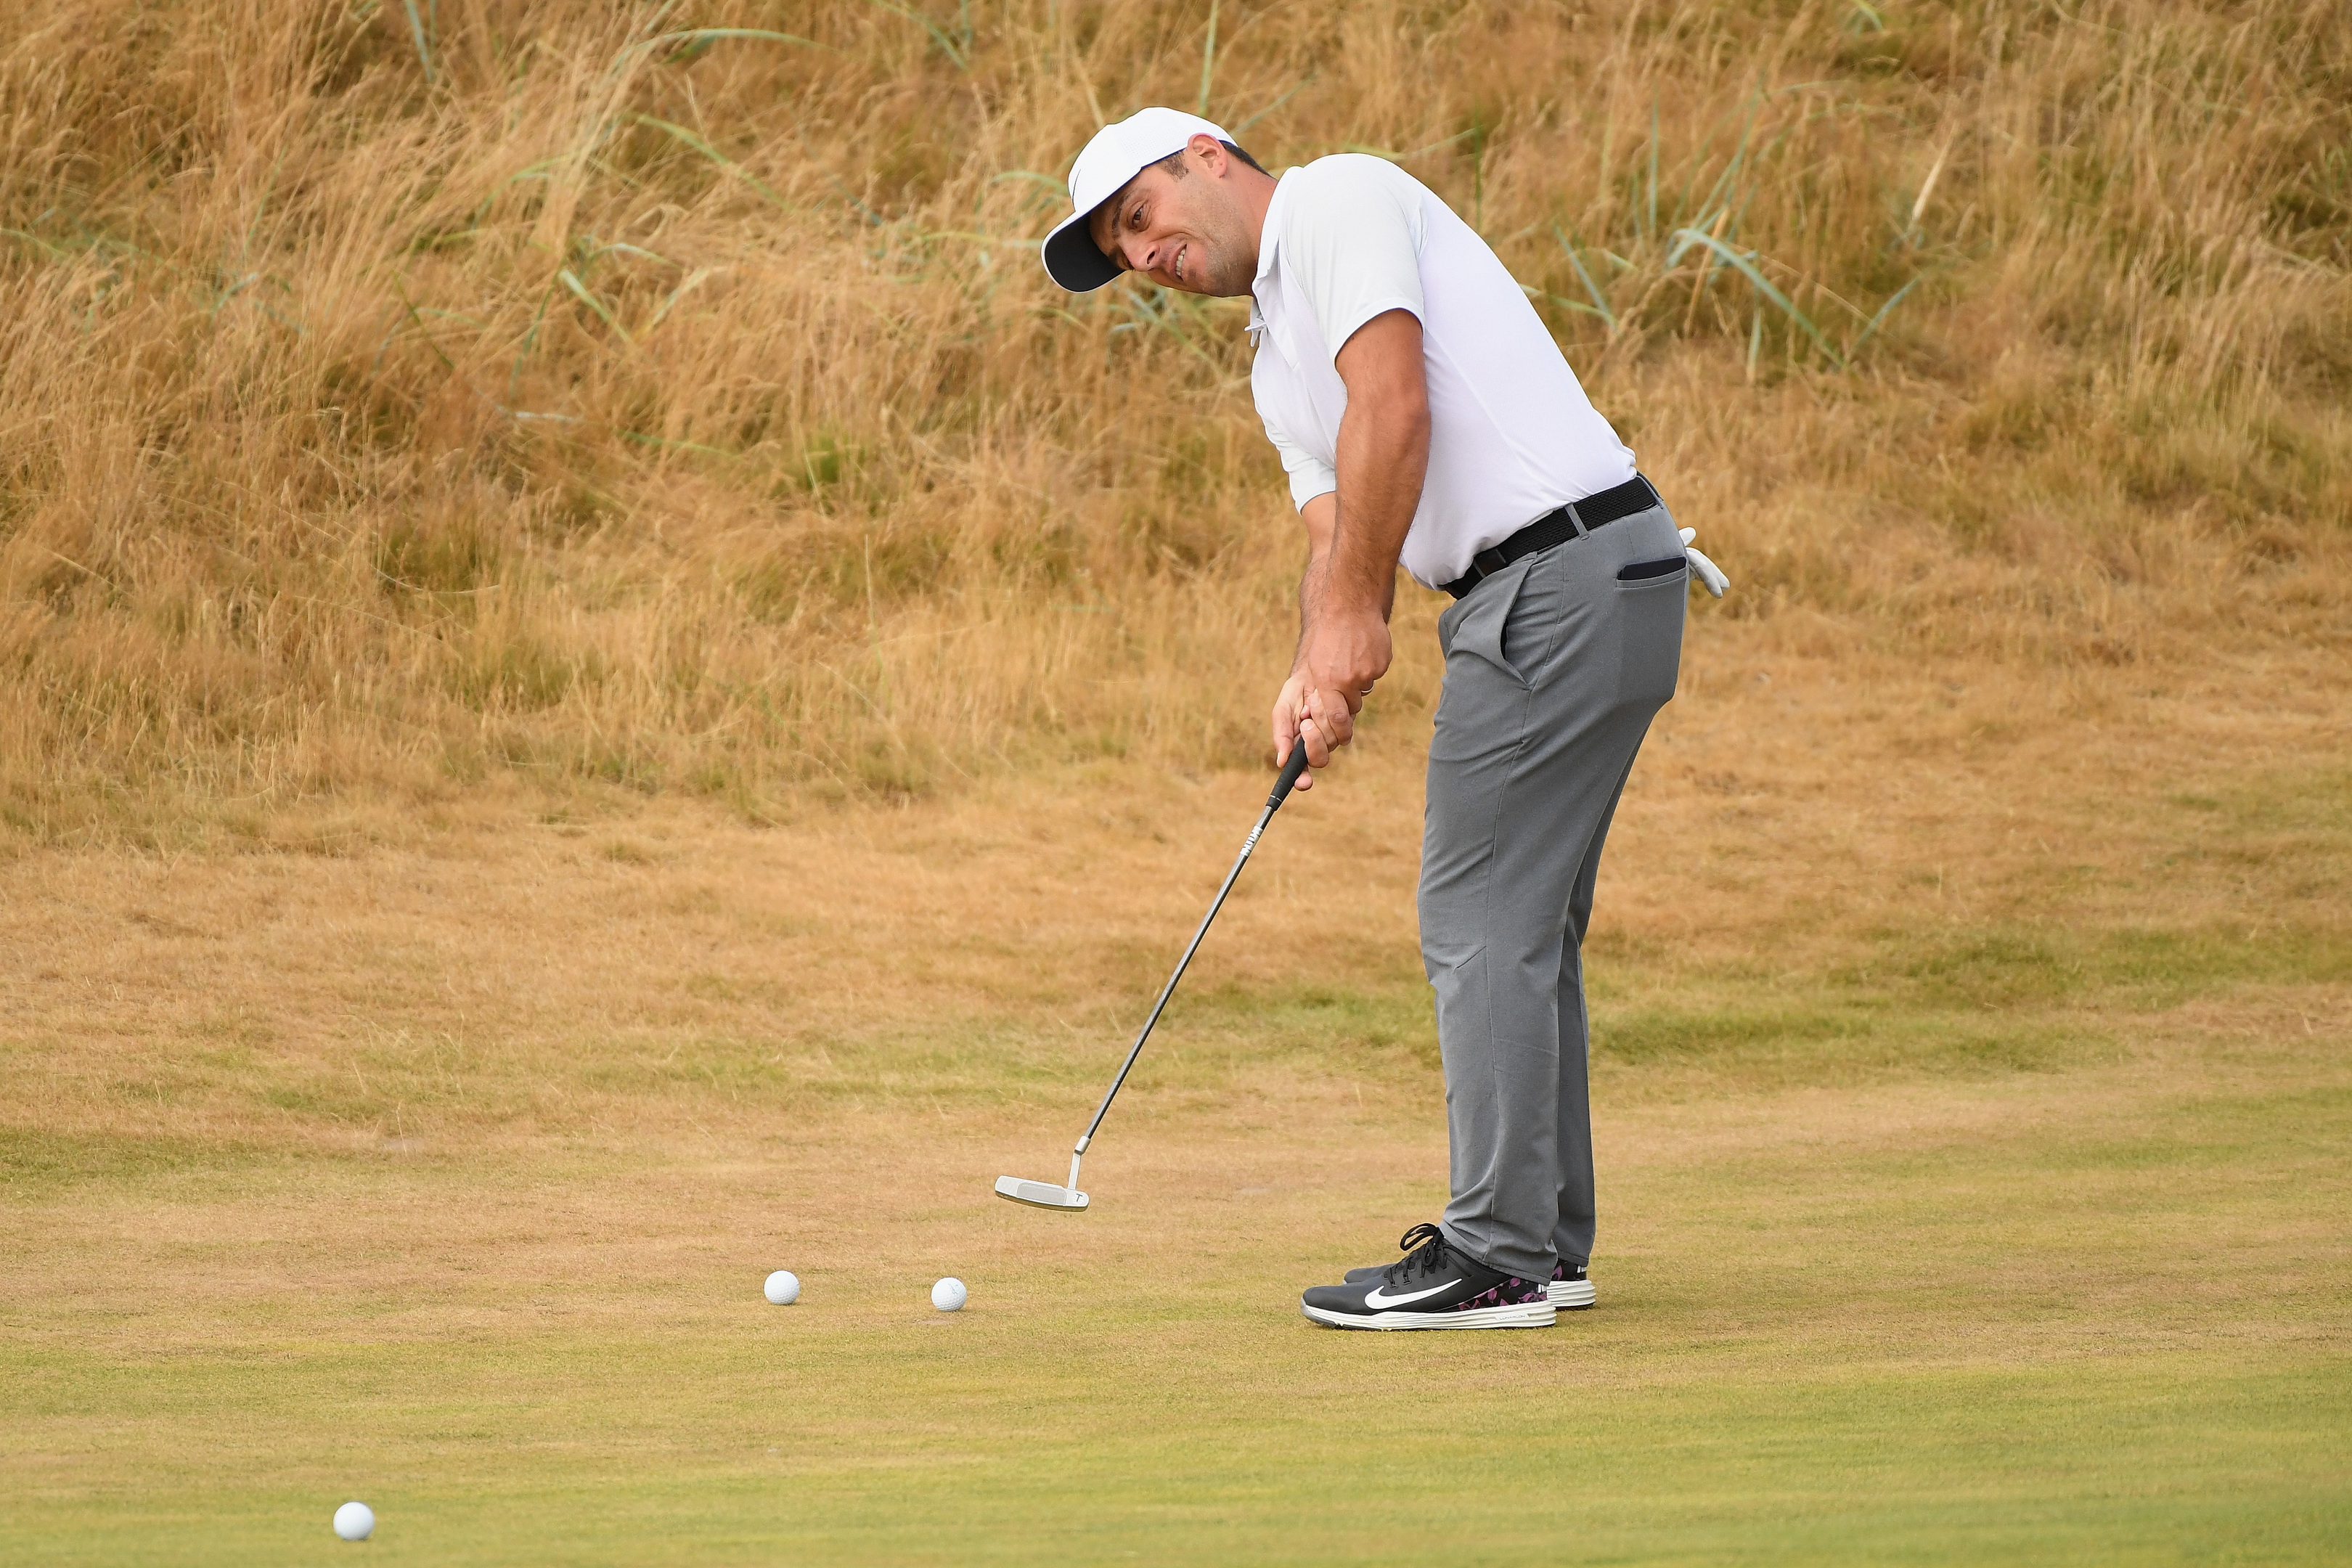 Francesco Molinari of Italy putts on the first hole during previews to the 147th Open Championship at Carnoustie Golf Club.